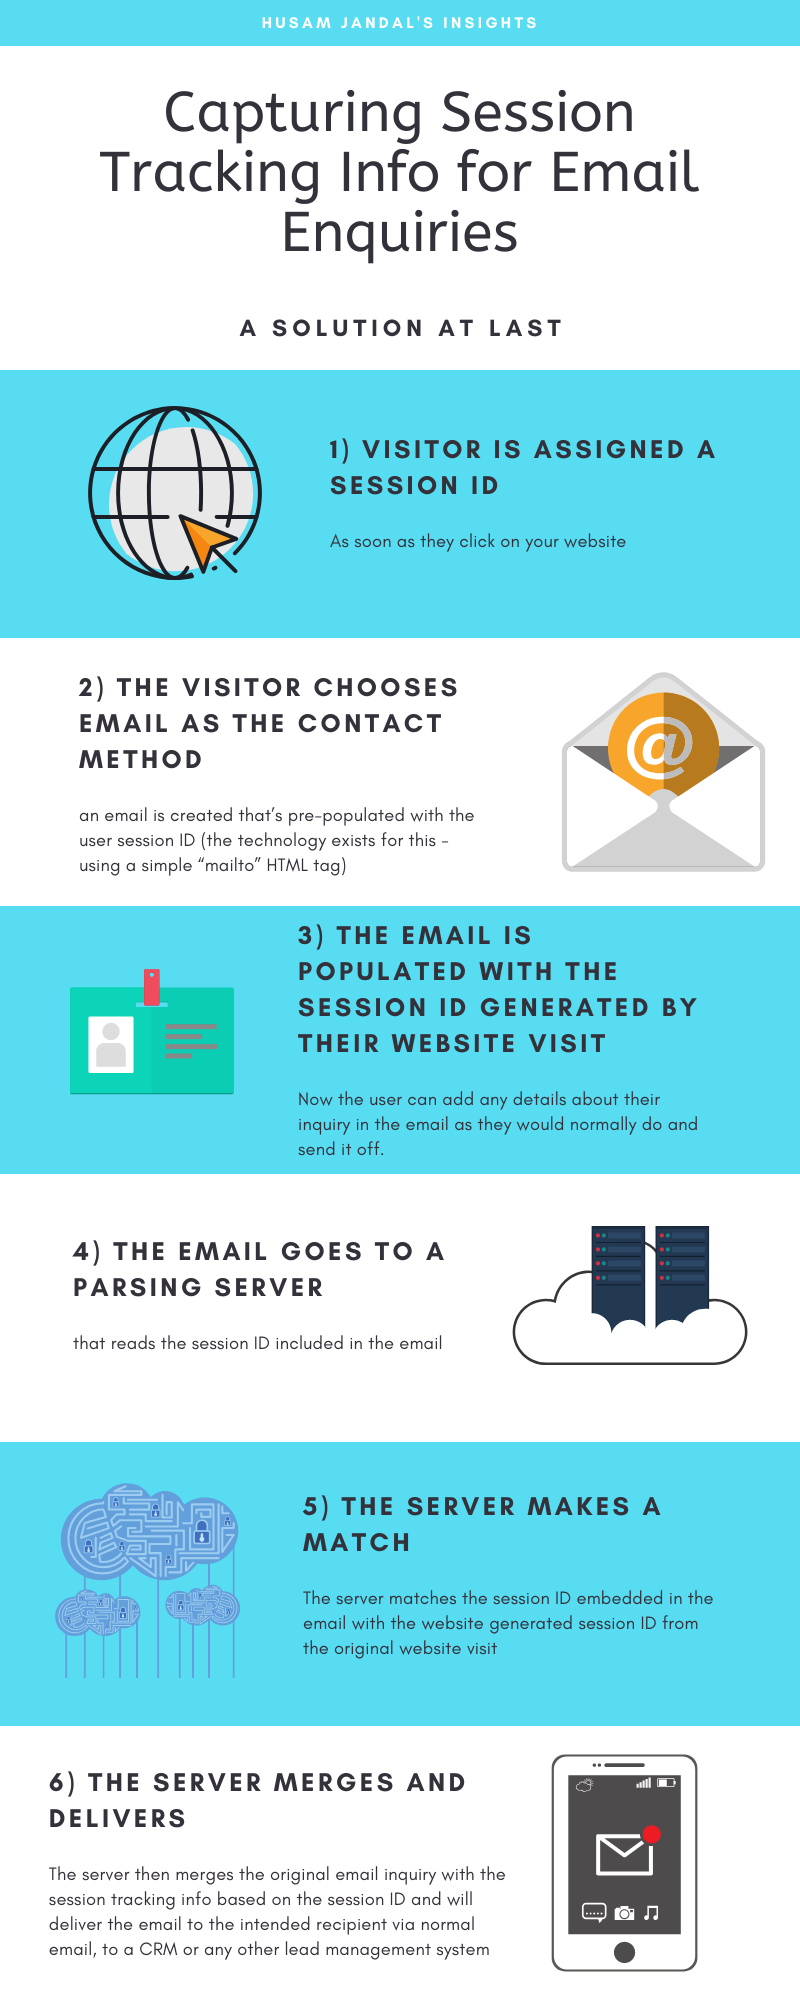 How to Capture Tracking Info for Email Enquiries including UTM data